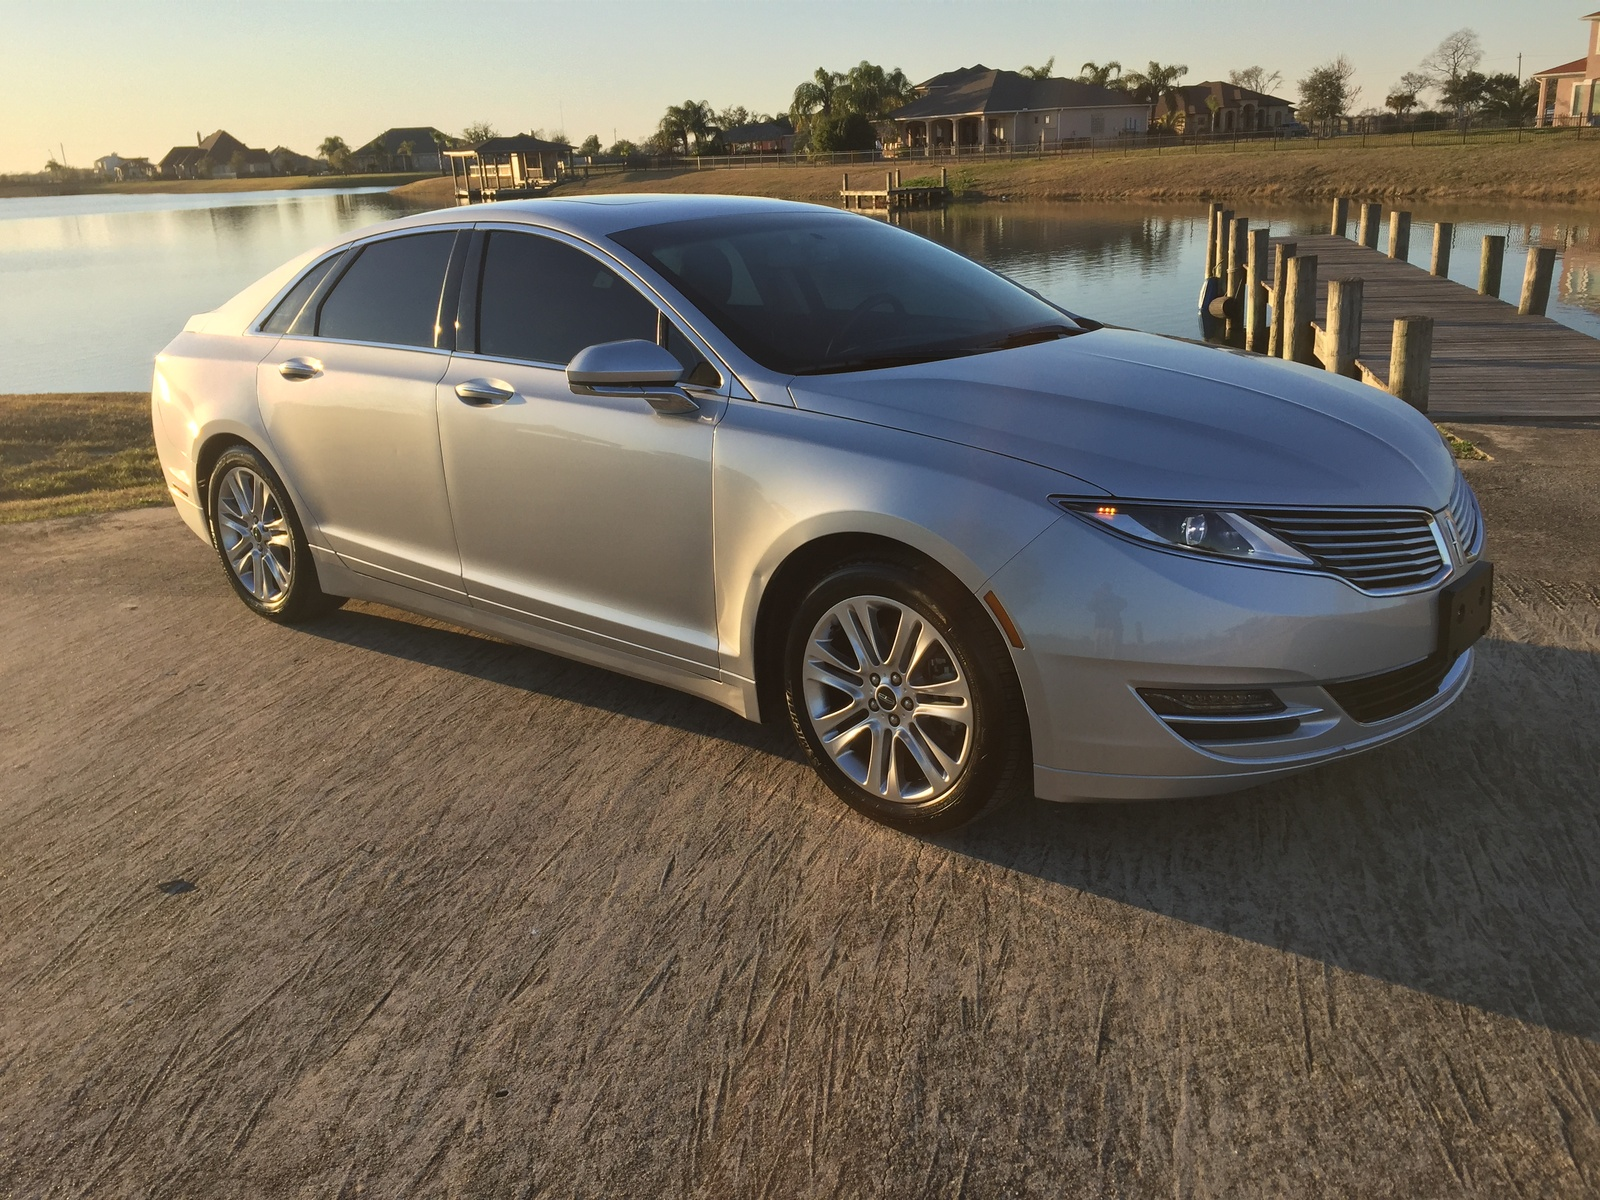 http://static.cargurus.com/images/site/2016/04/15/03/59/2015_lincoln_mkz_base-pic-8649084888974045054-1600x1200.jpeg